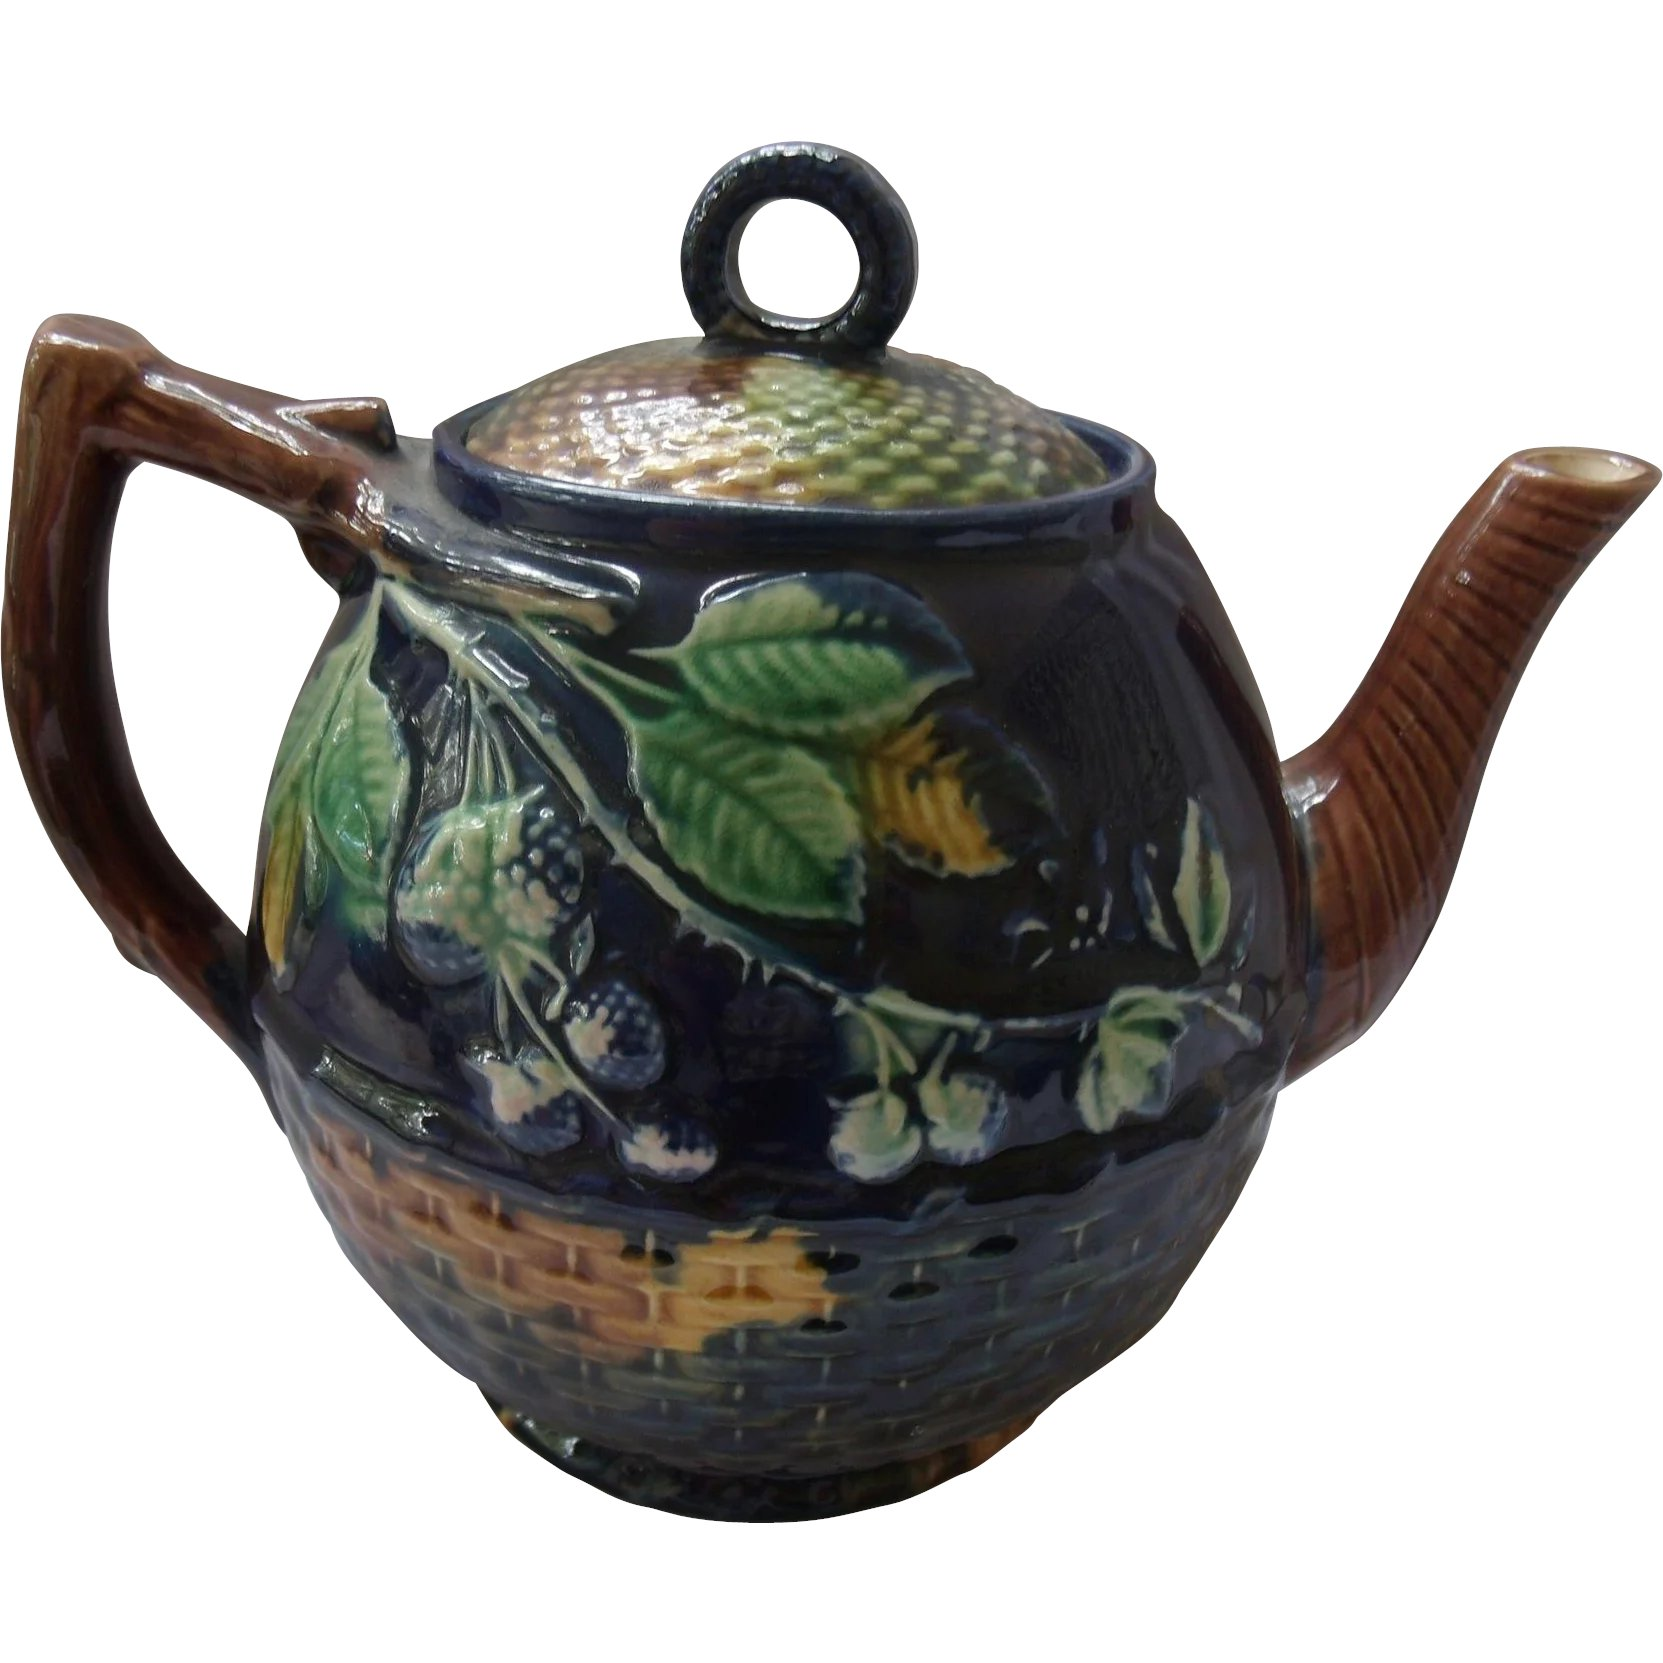 Antique Majolica Teapot Cobalt Blackberry & Basketweave : Antiquel